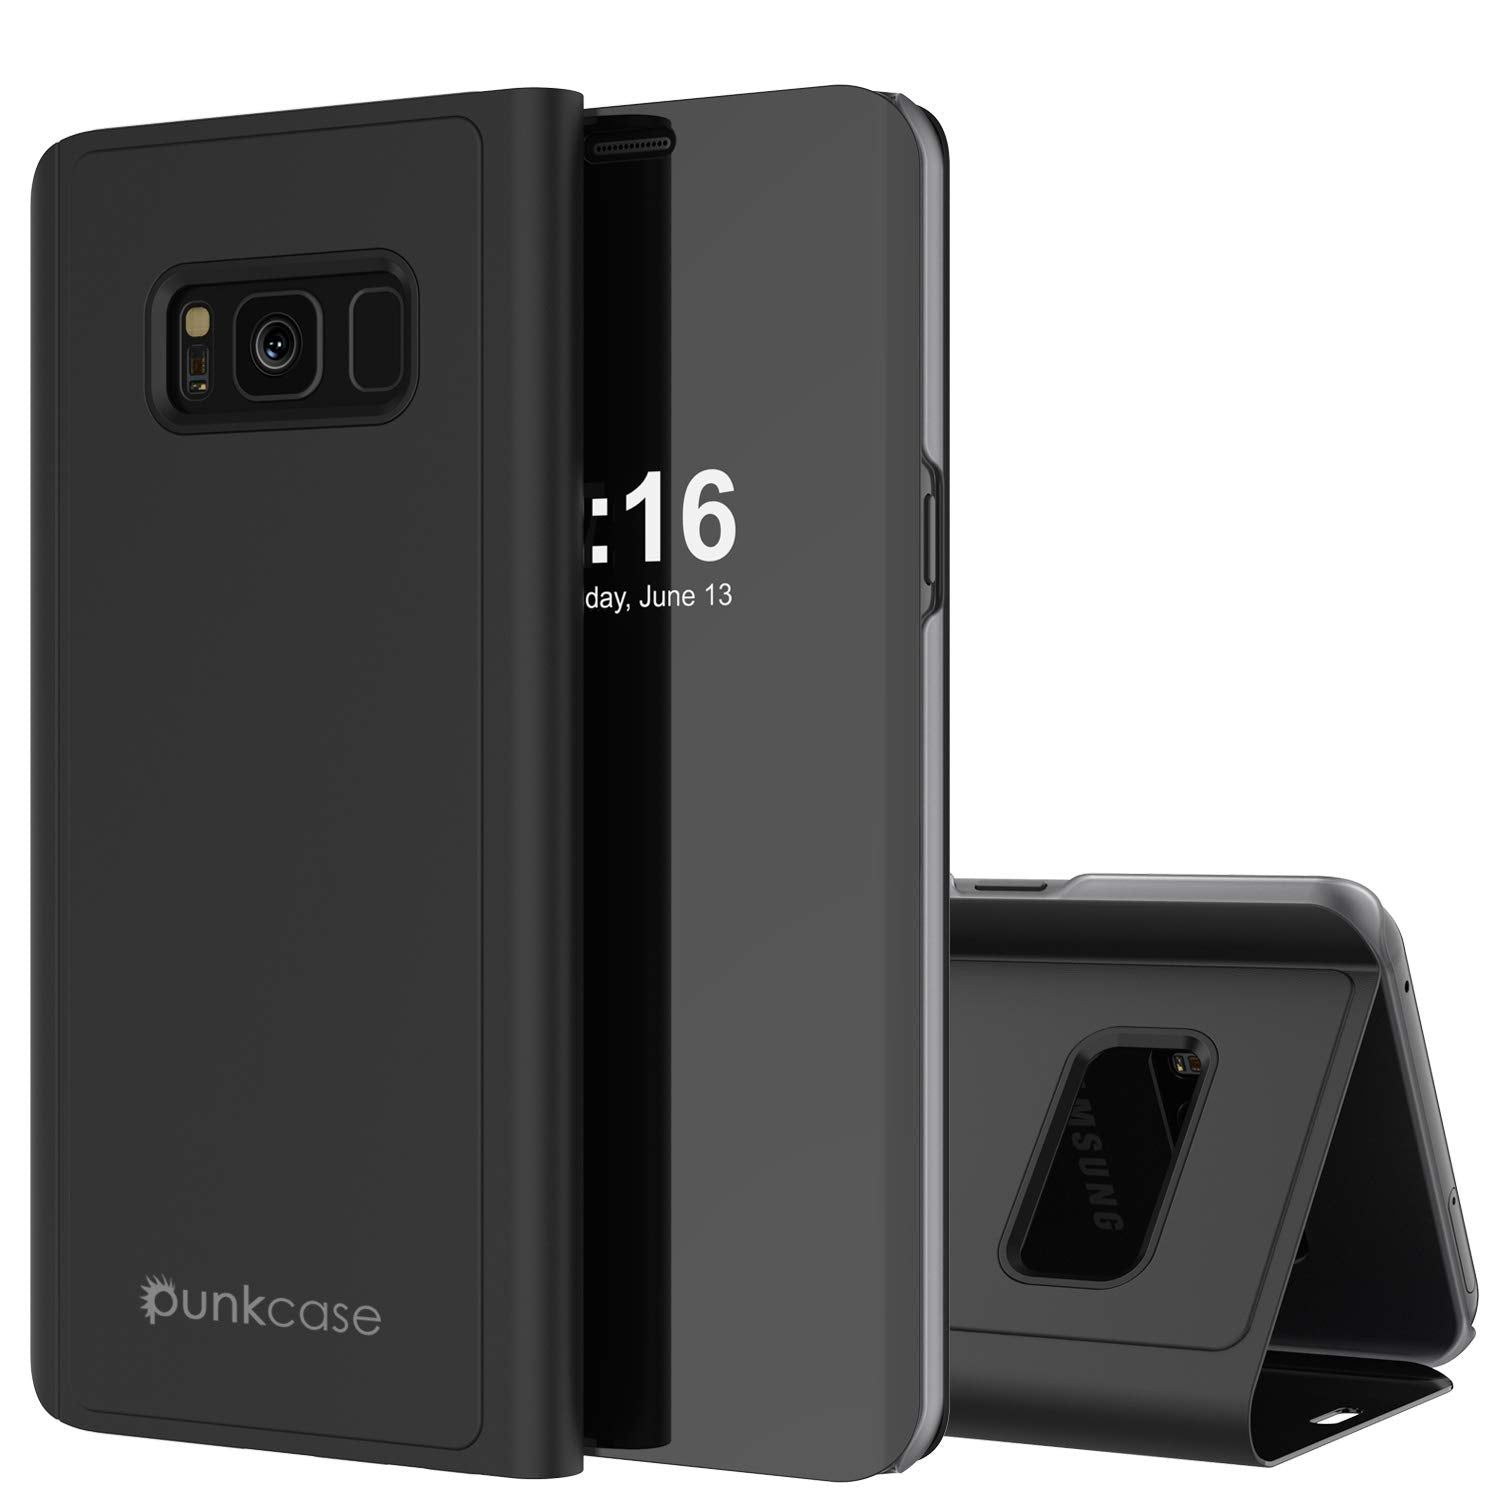 Punkcase S8 Plus Reflector Case Protective Flip Cover [Black]